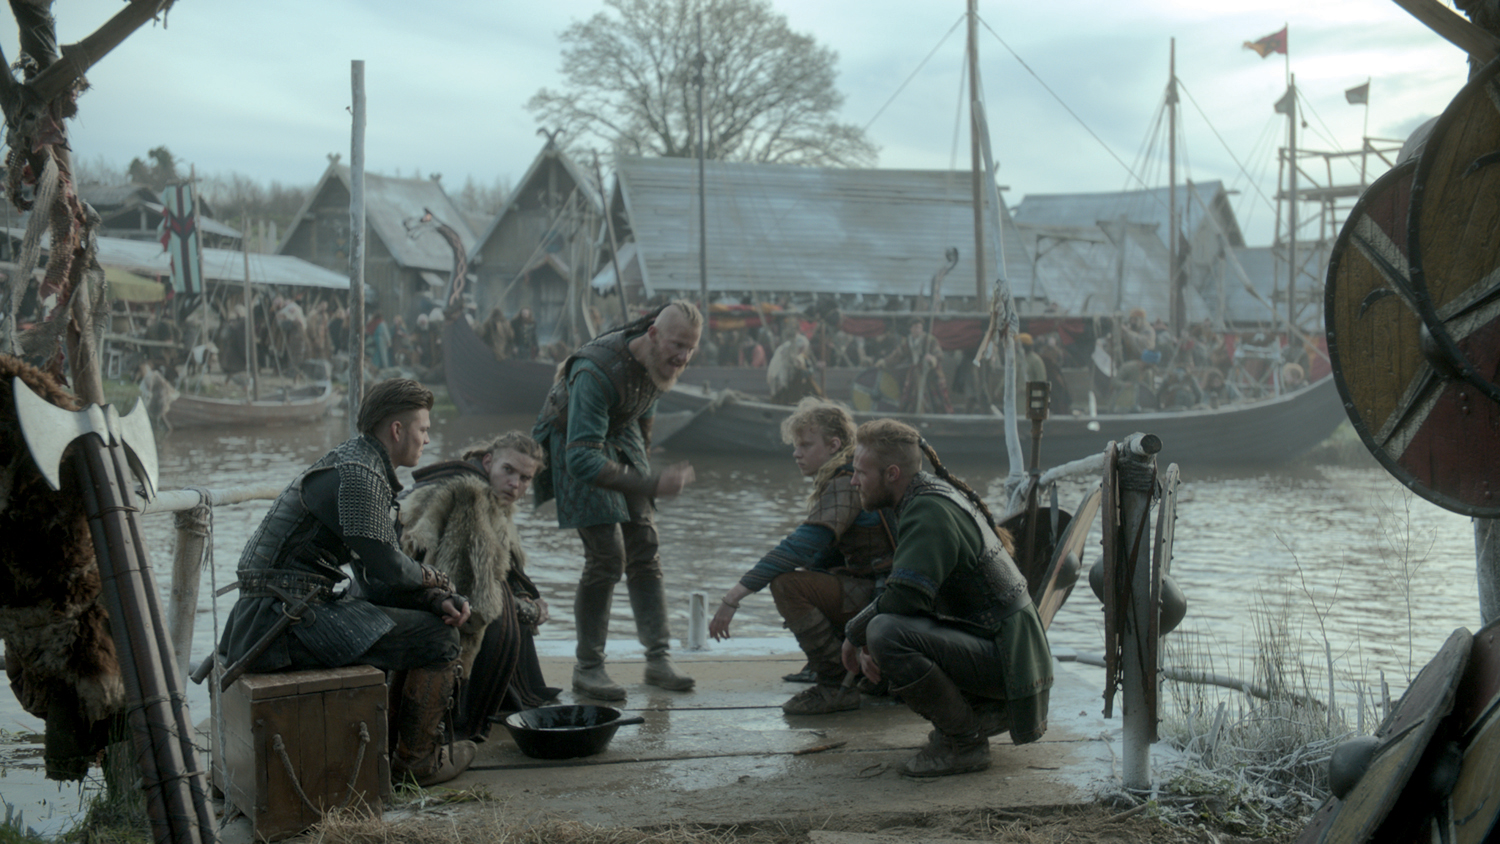 Vikings shot 1